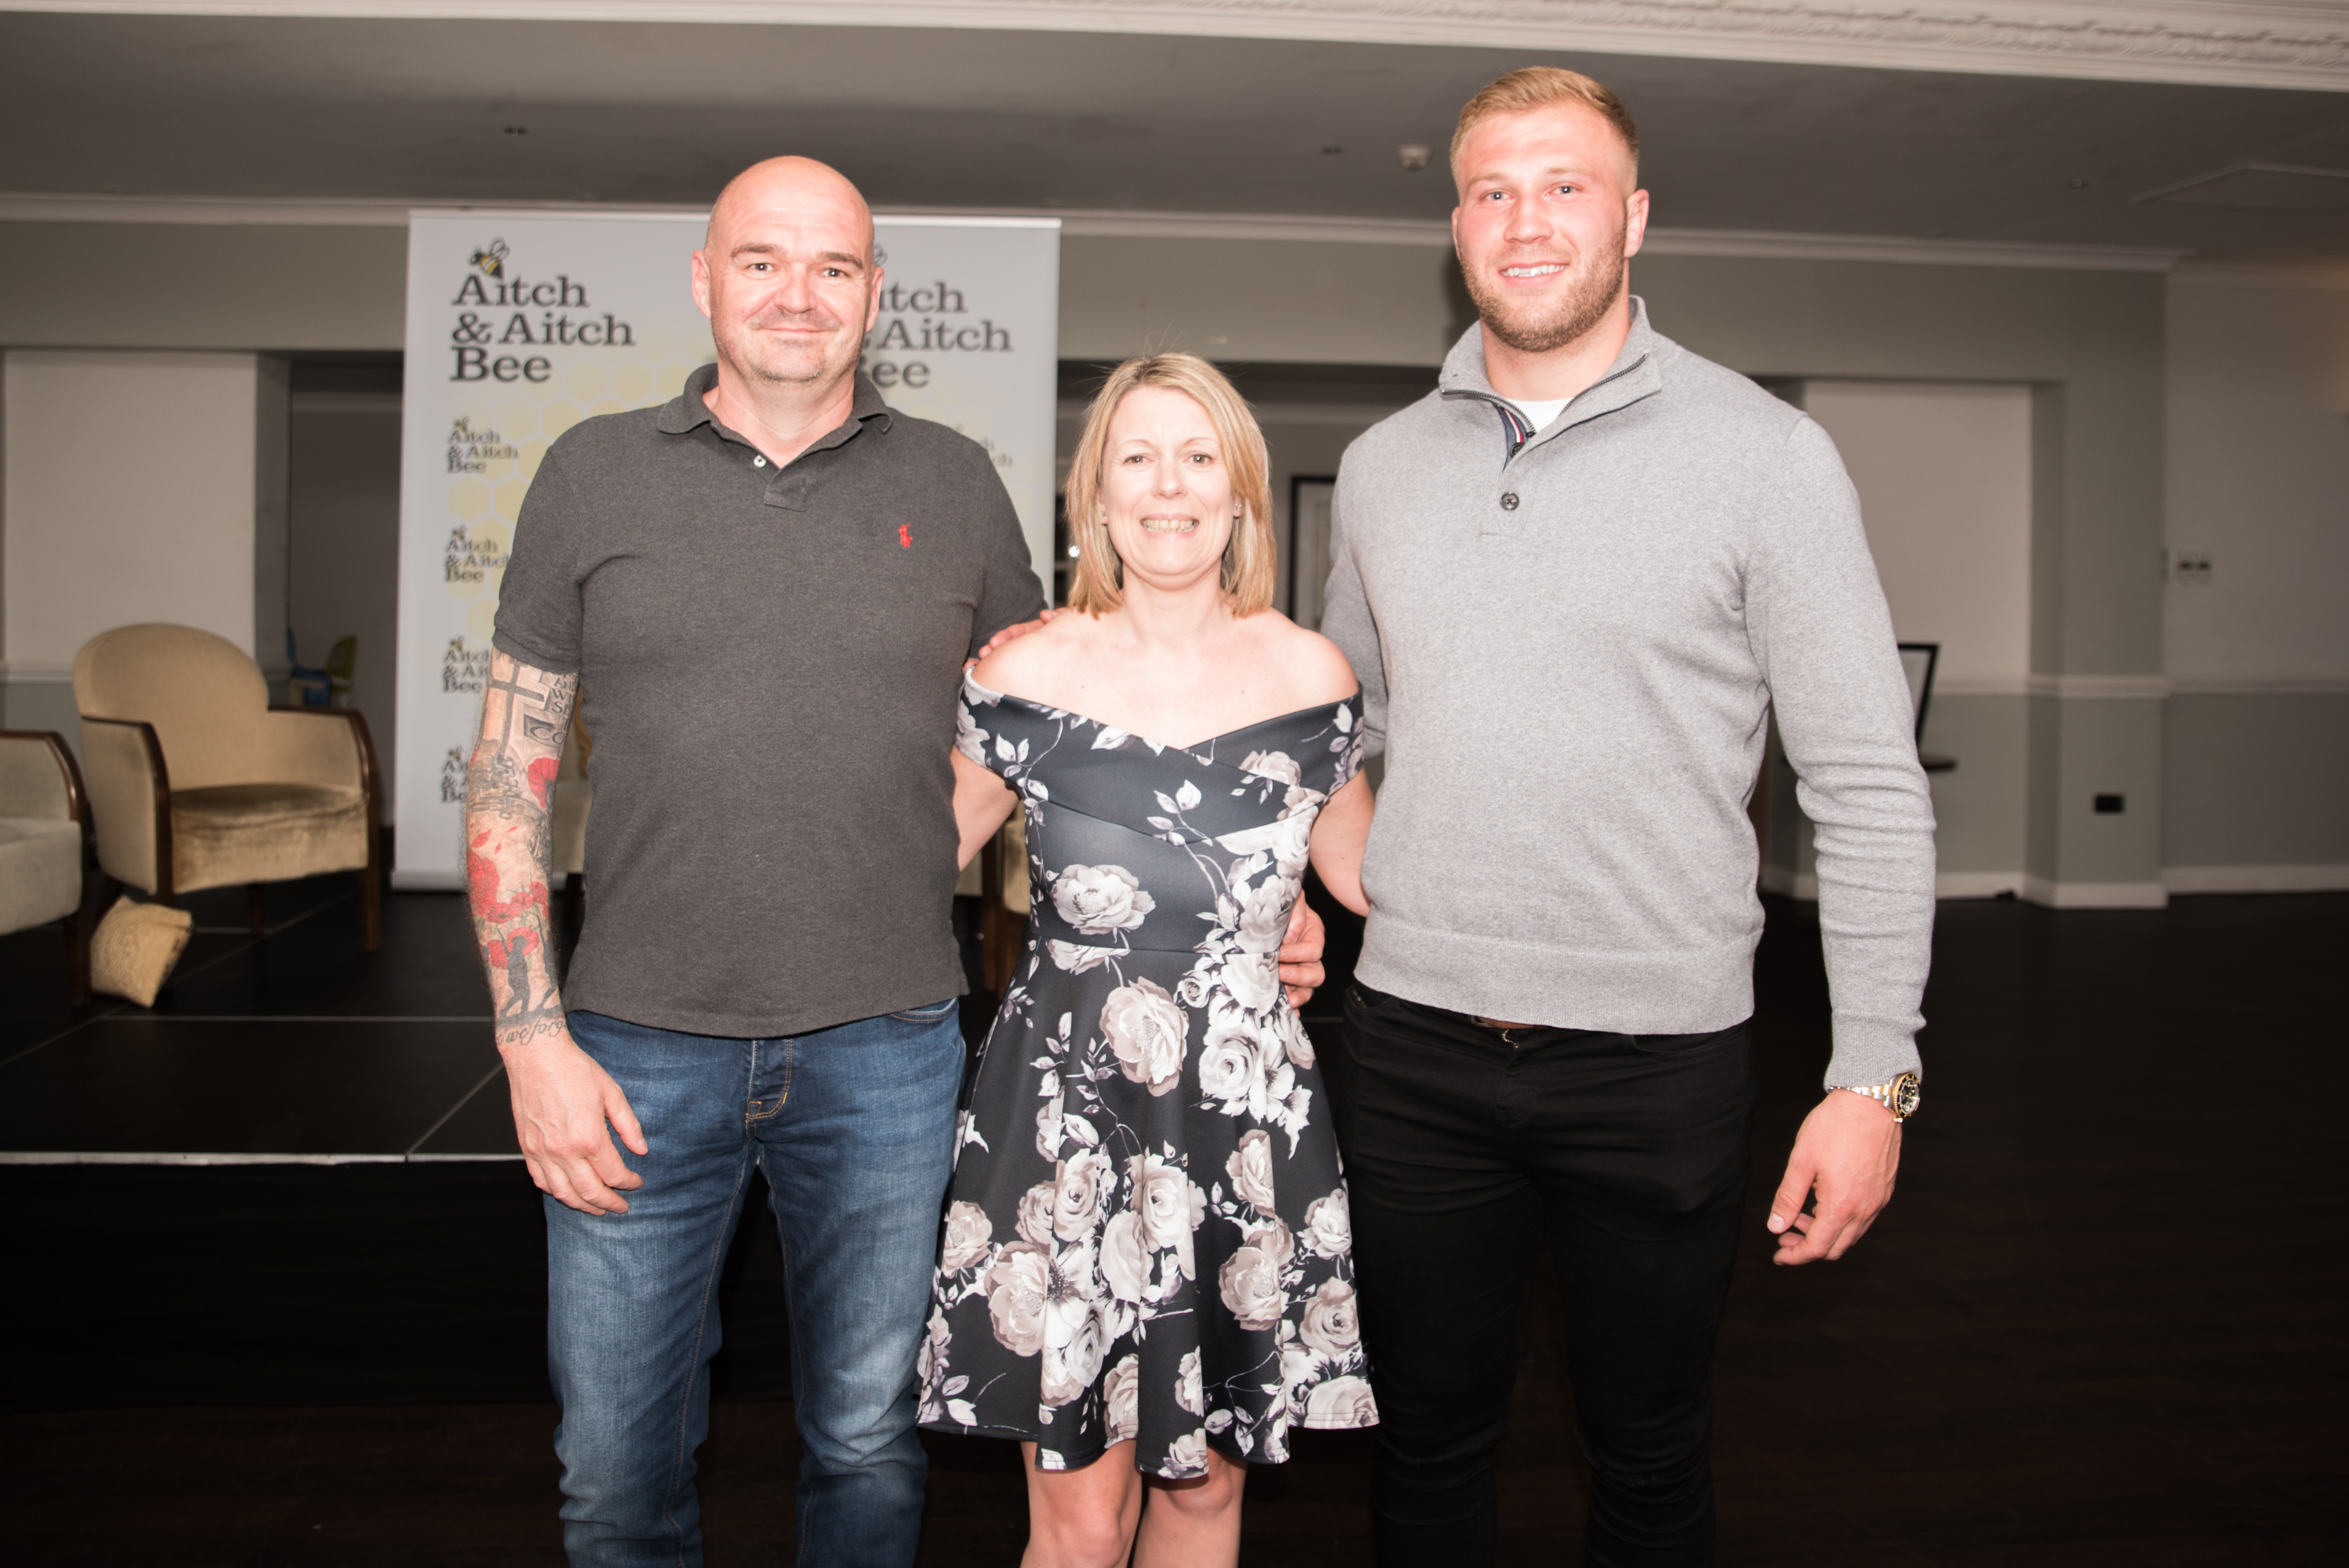 Aitch and Aitch Bee Richard Hibbard, Ross Moriarty, John Afoa, Matt Scott (93)